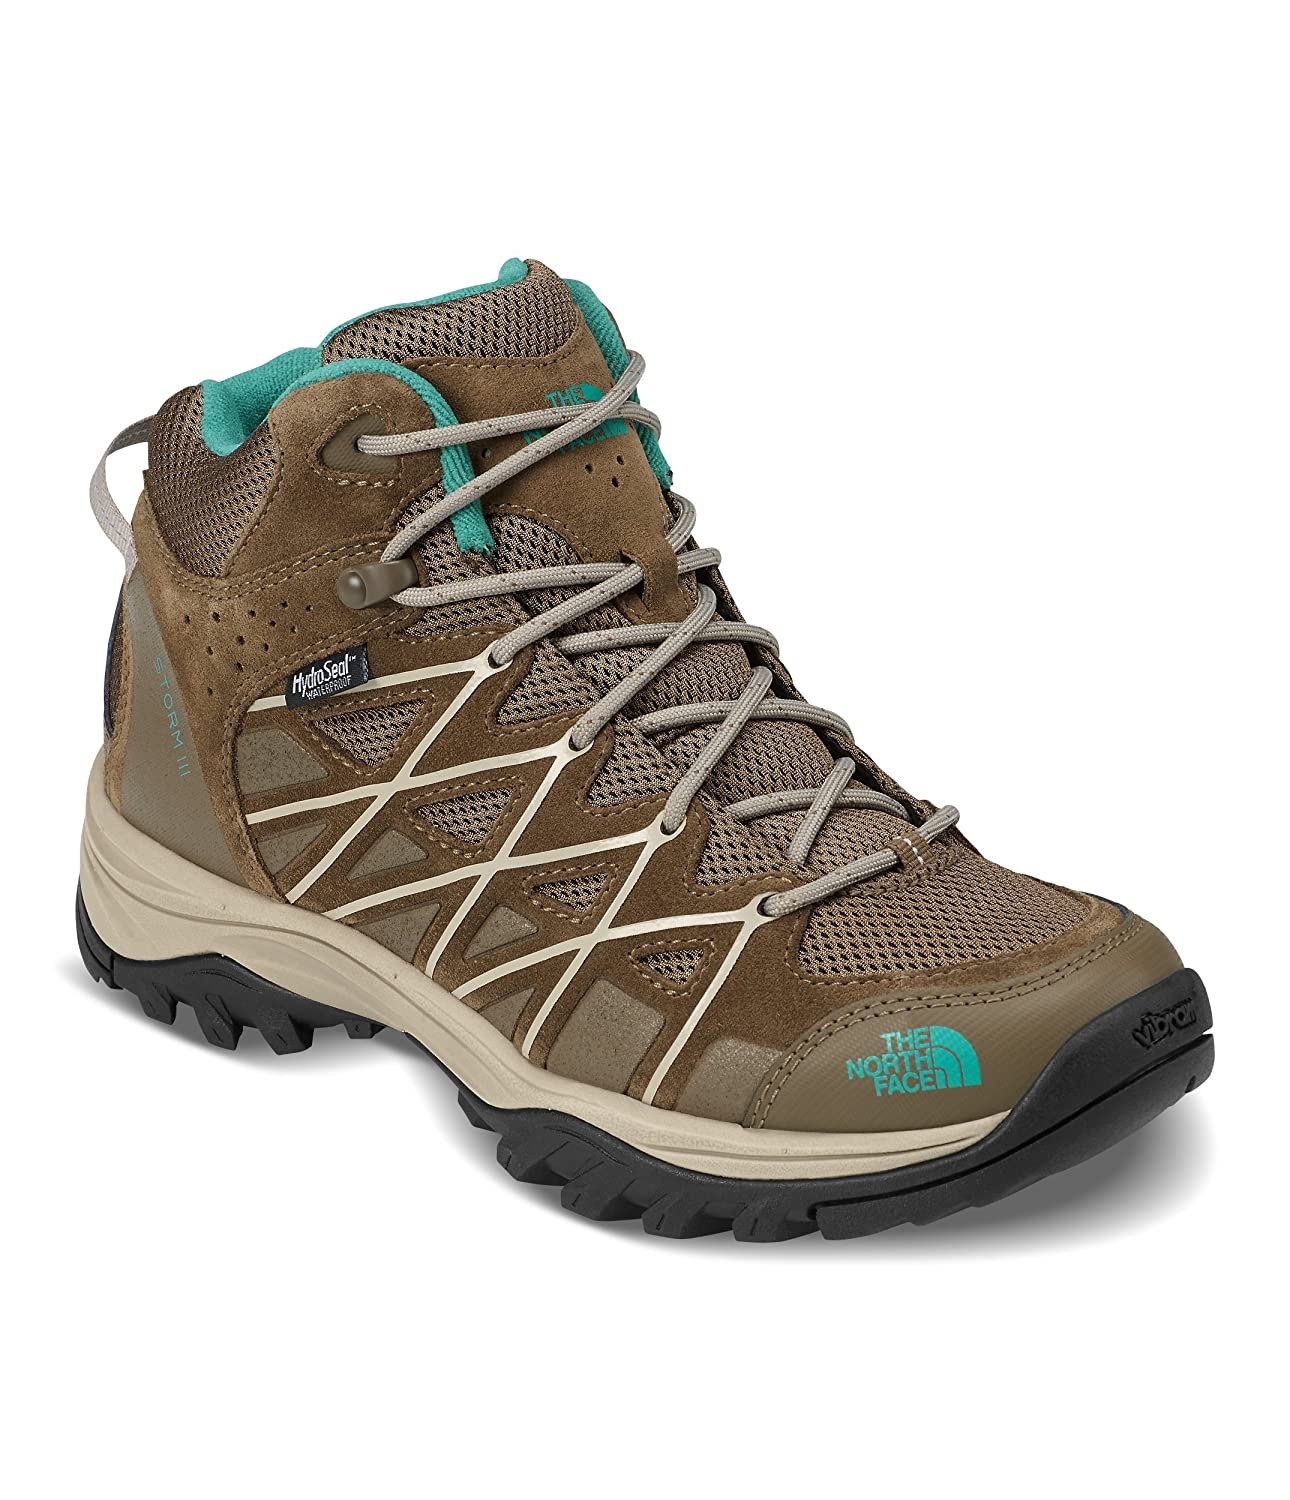 The North Face Womens Storm III Mid Waterproof B07DKF1913 10.5|Cub Brown & Crockery Beige